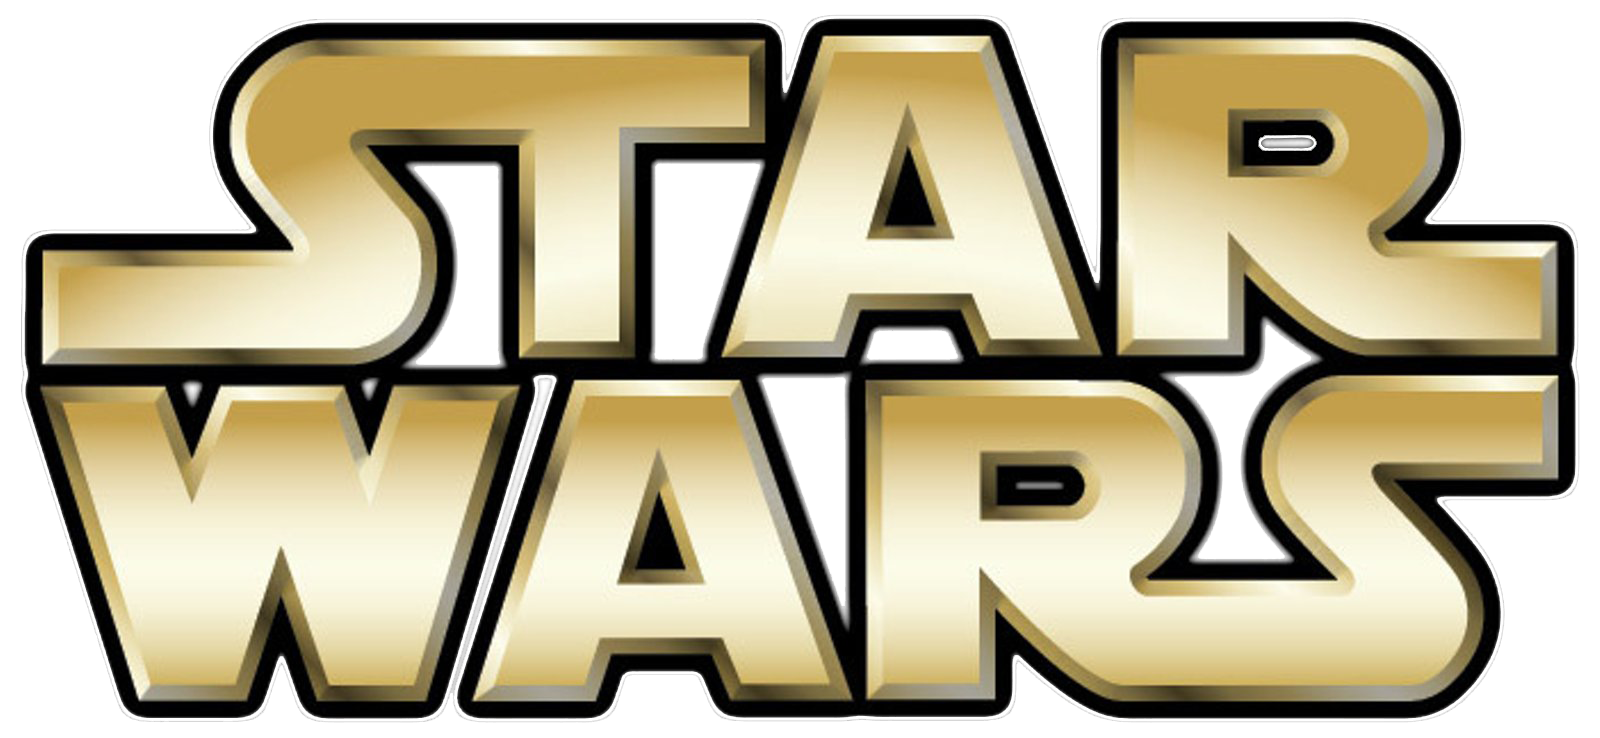 Star wars logo clipart graphic freeuse stock Star wars logo PNG images graphic freeuse stock